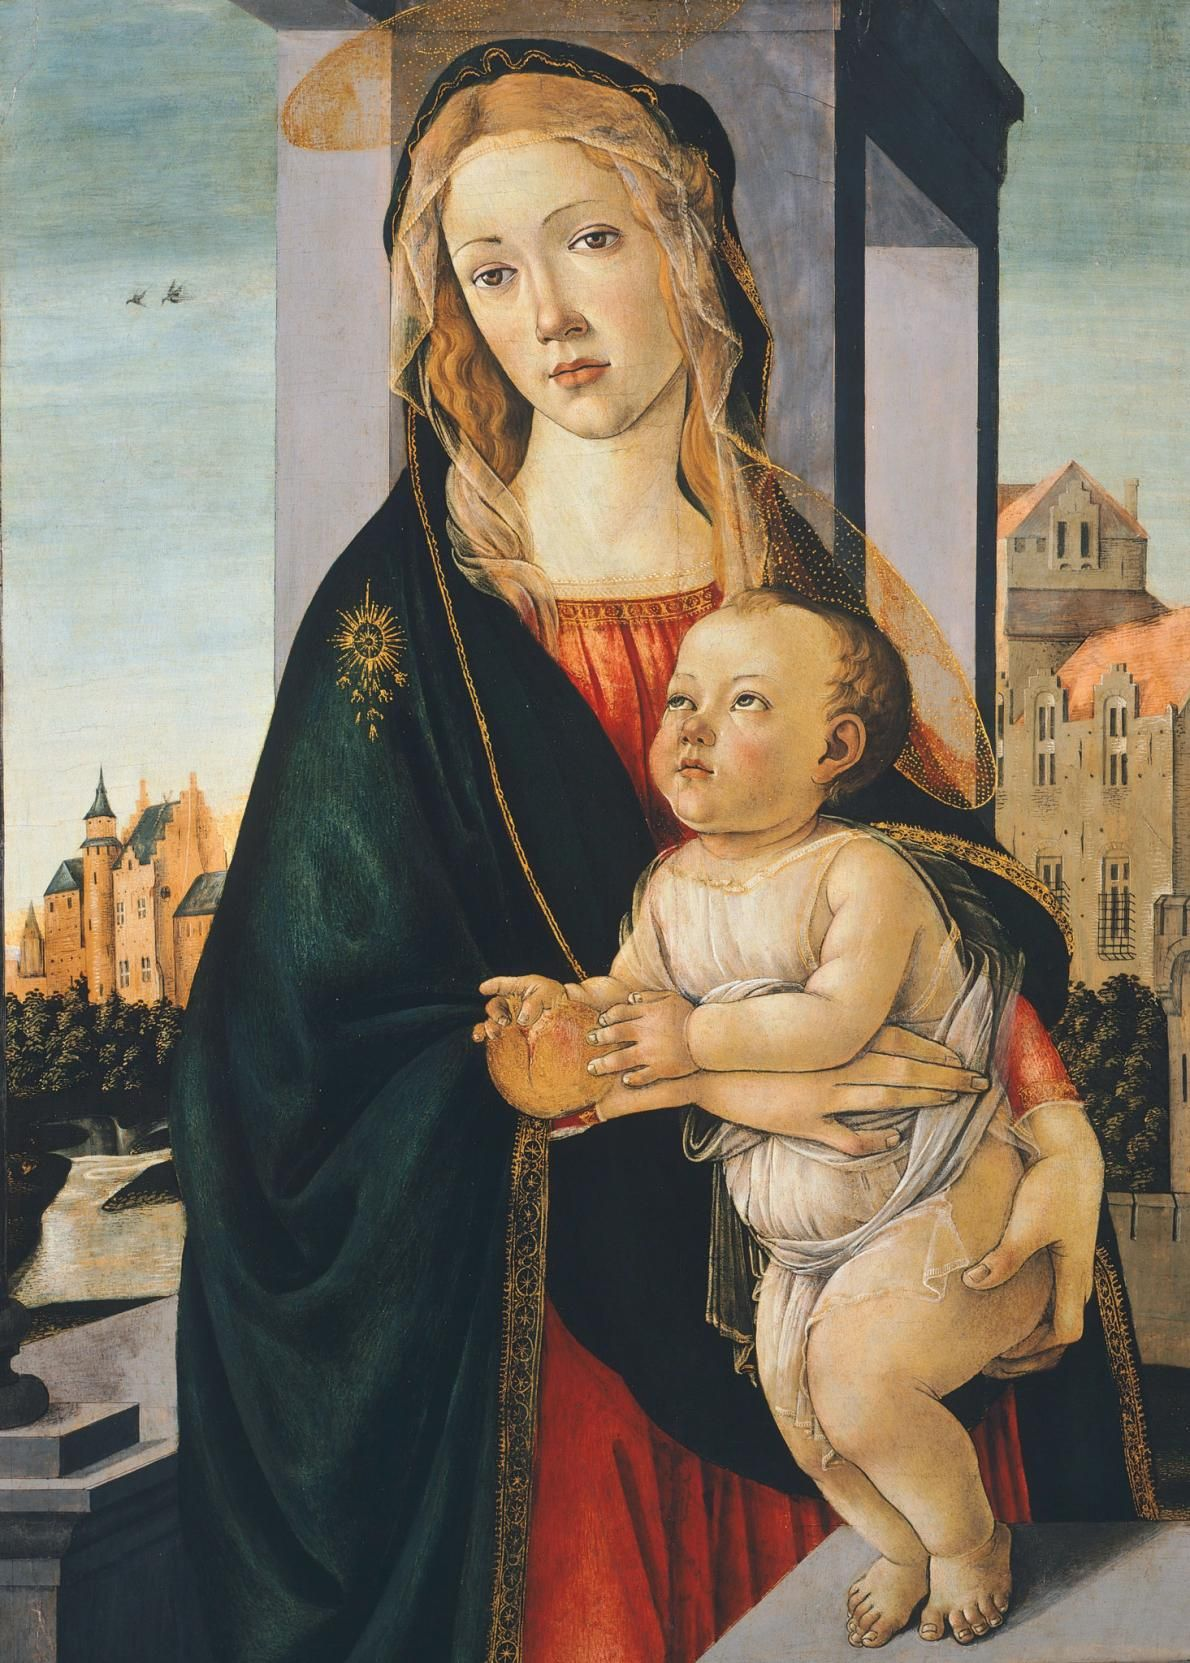 Breaking new ground, Botticelli's iconic Renaissance masterpieces used  Christian themes and classic myths to…   Italian renaissance art,  Botticelli, Renaissance art